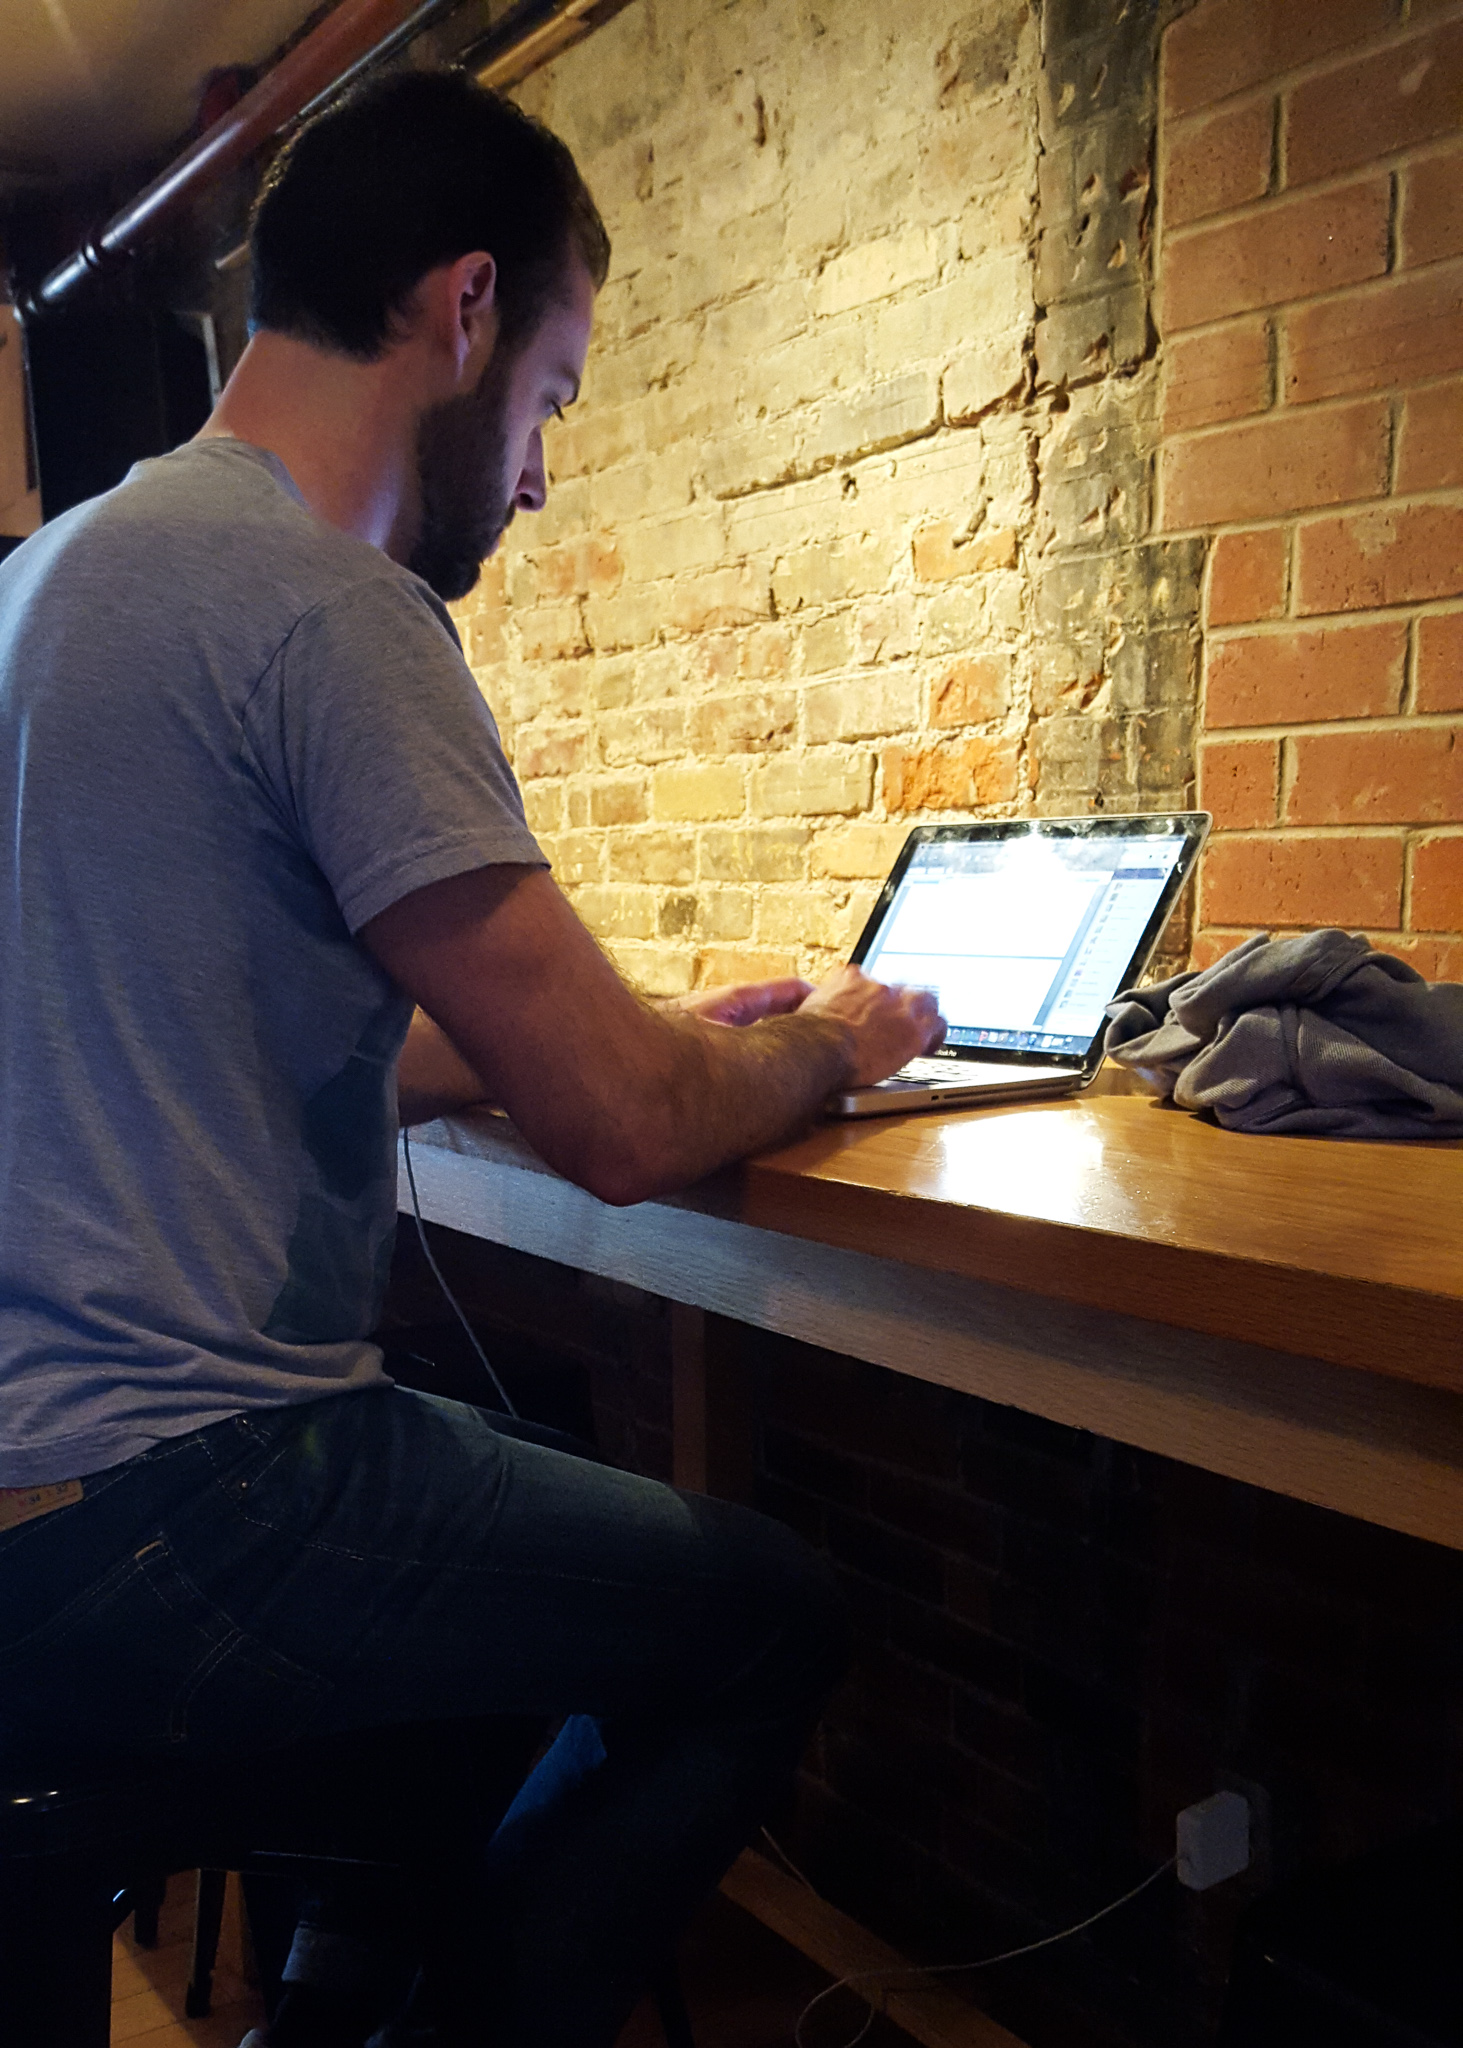 person on a laptop